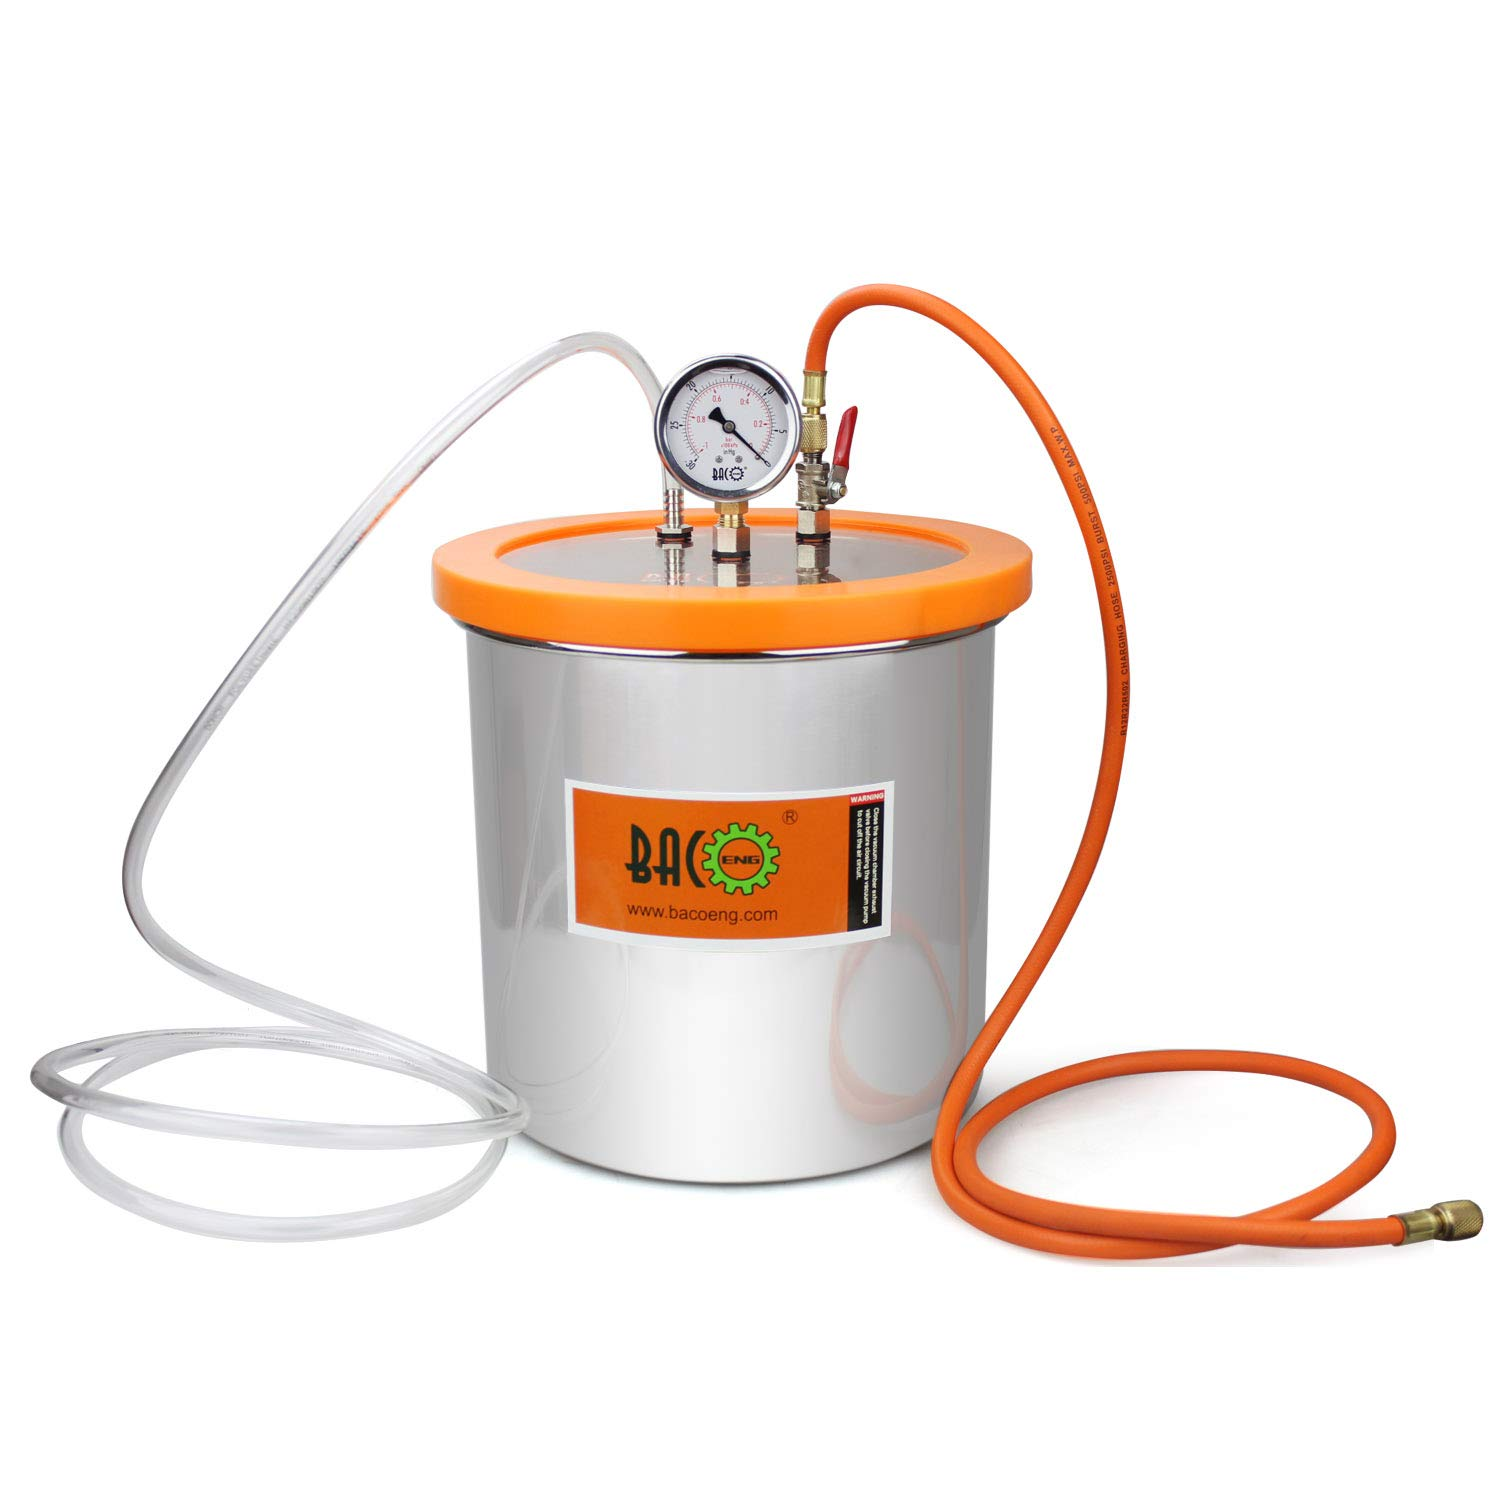 BACOENG 3 Gallon Stainless Steel Resin Trap Vacuum Degassing Chamber (3 Gallon/1.2 QT/2 QT Available)